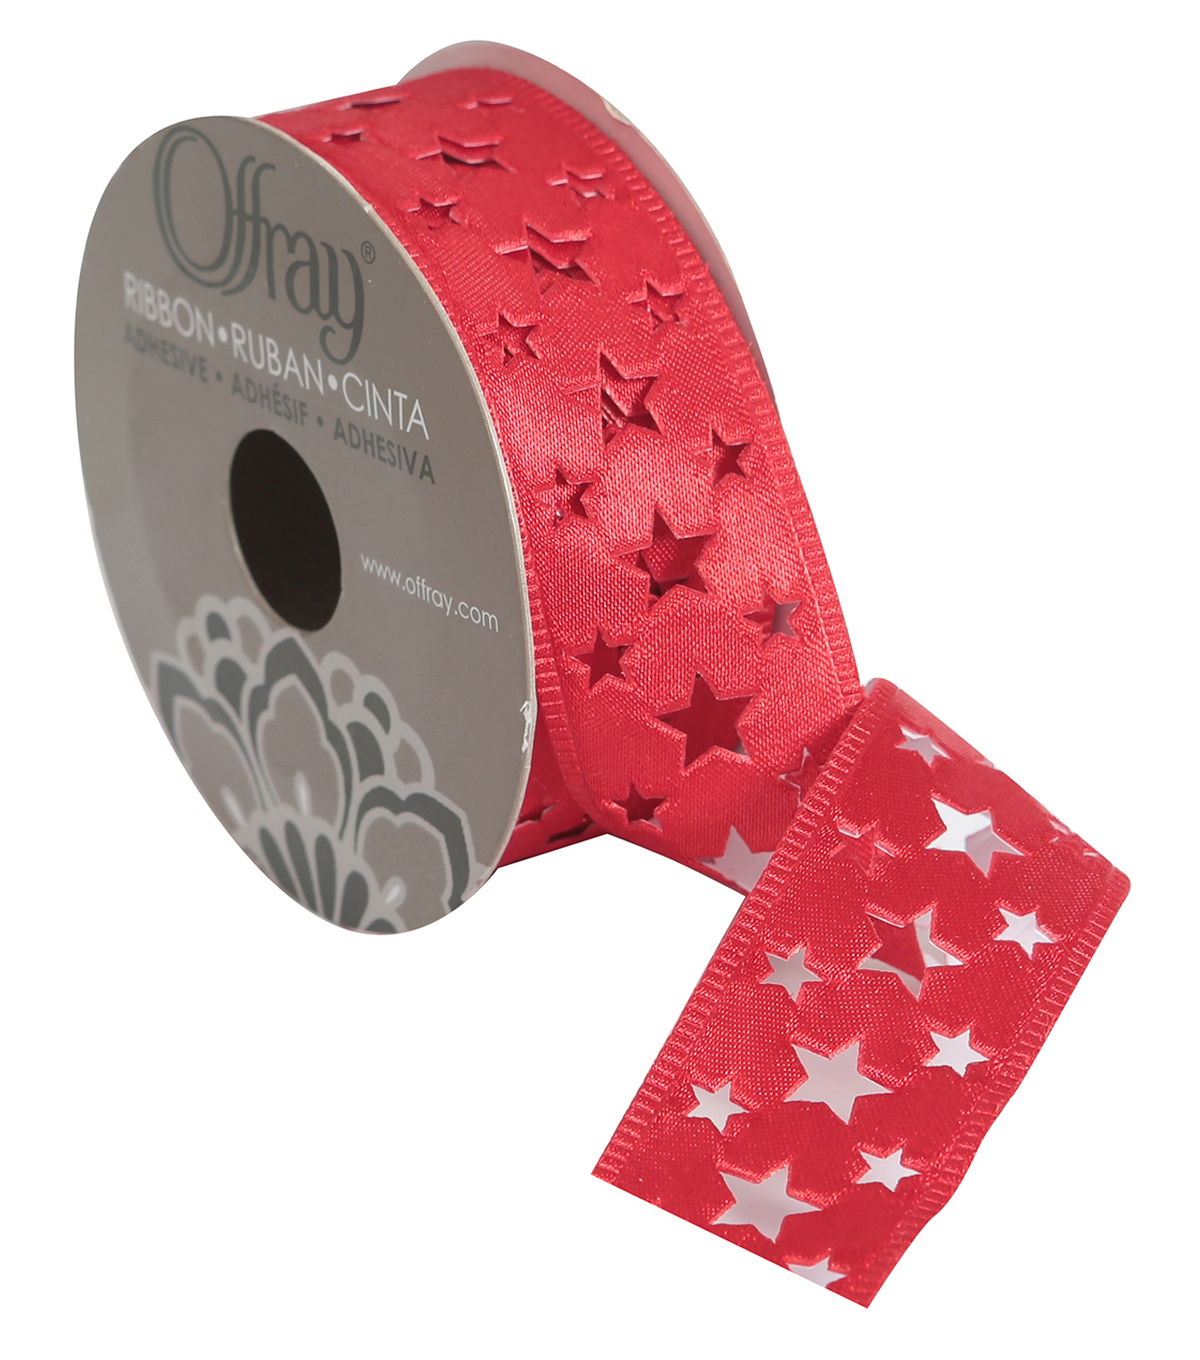 Offray 1 1/8\u0022 x 9\u0027 Die Cut Star Ribbon-Red